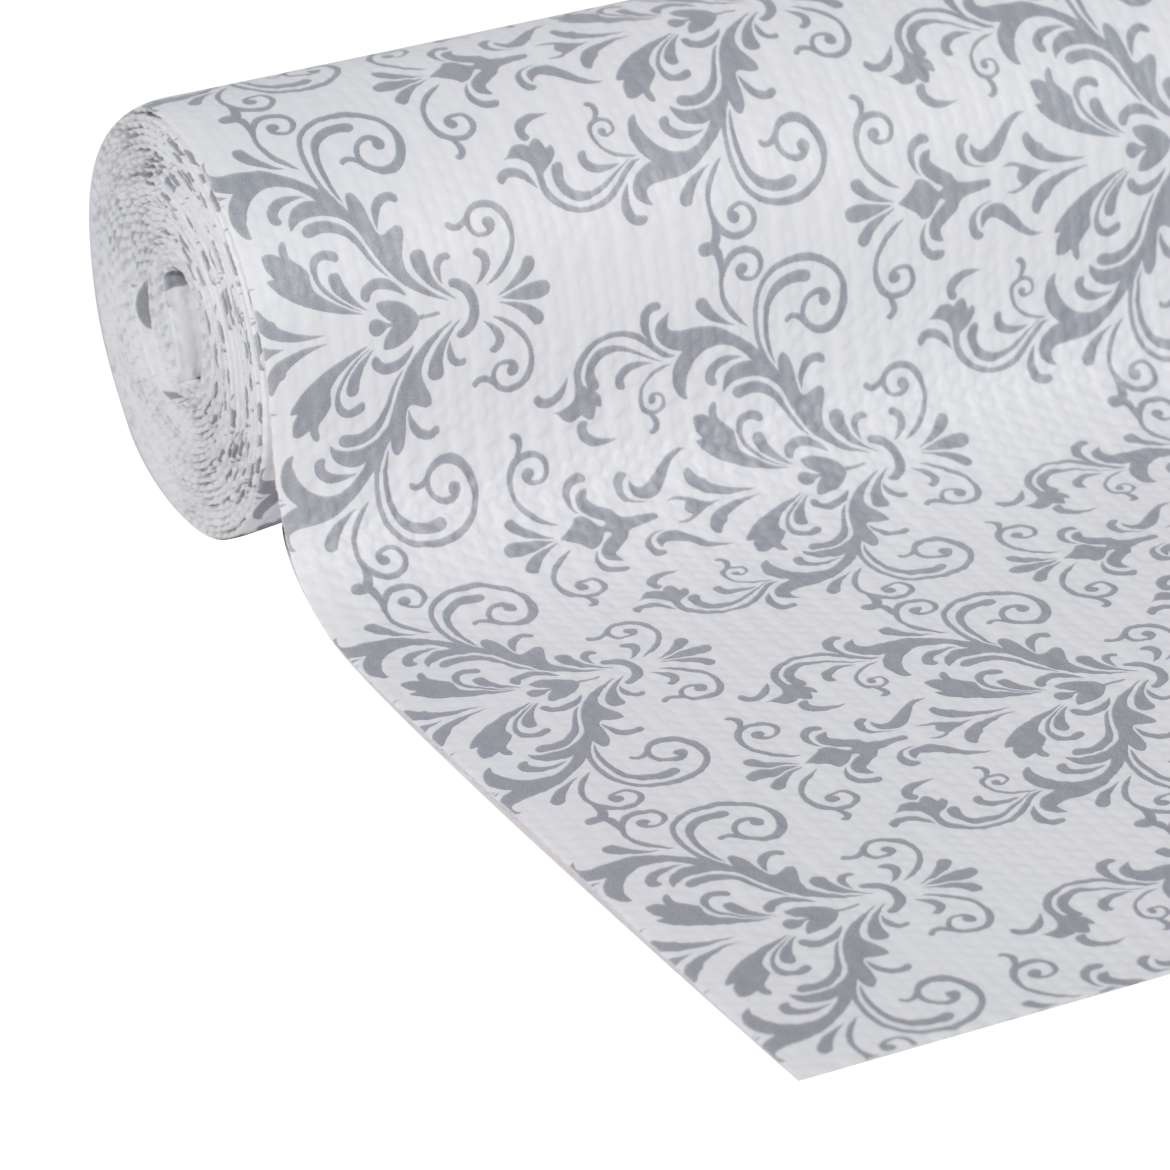 "Duck Brand Smooth Top Non-Adhesive Shelf Liner, 12"" x 10', Grey Damask"